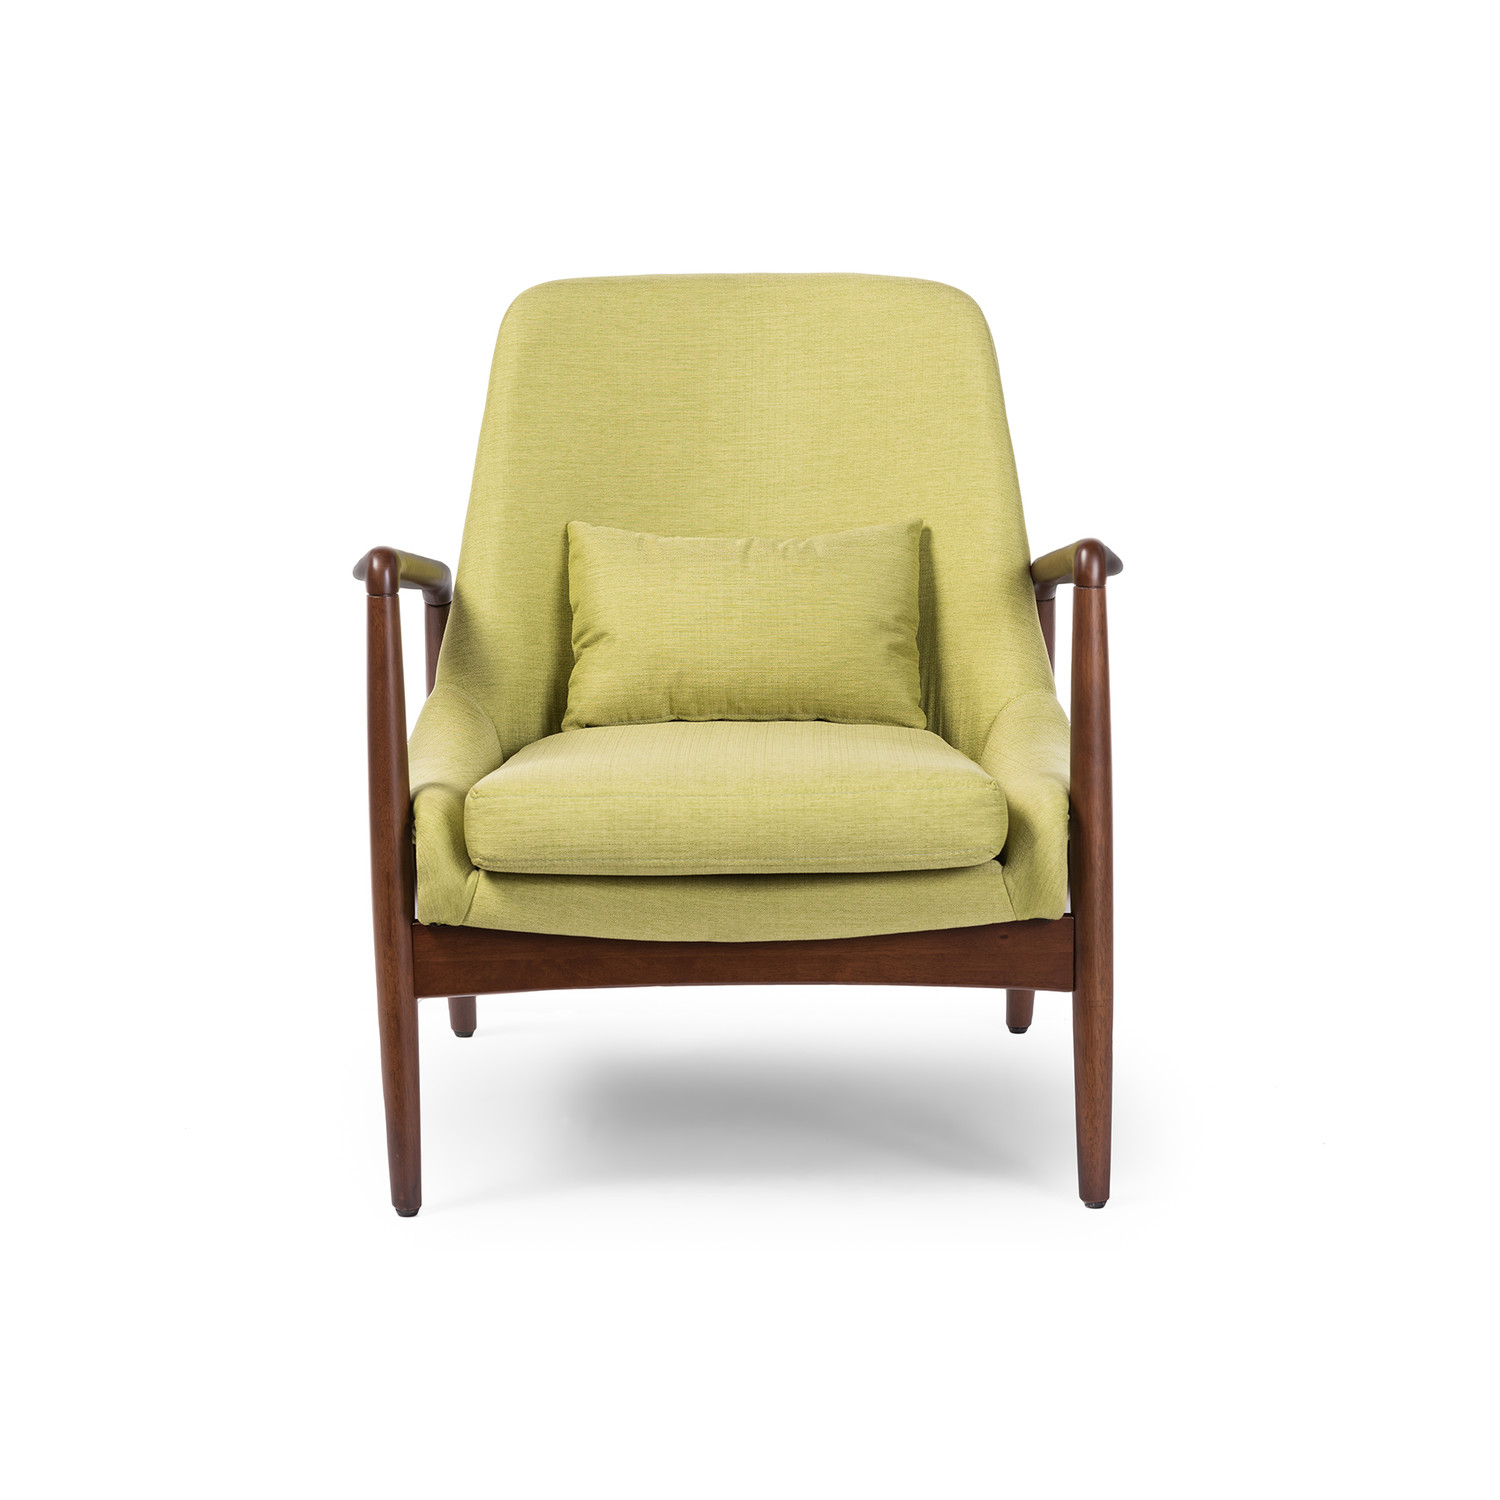 Image of: Good Mid Century Modern Lounge Chair